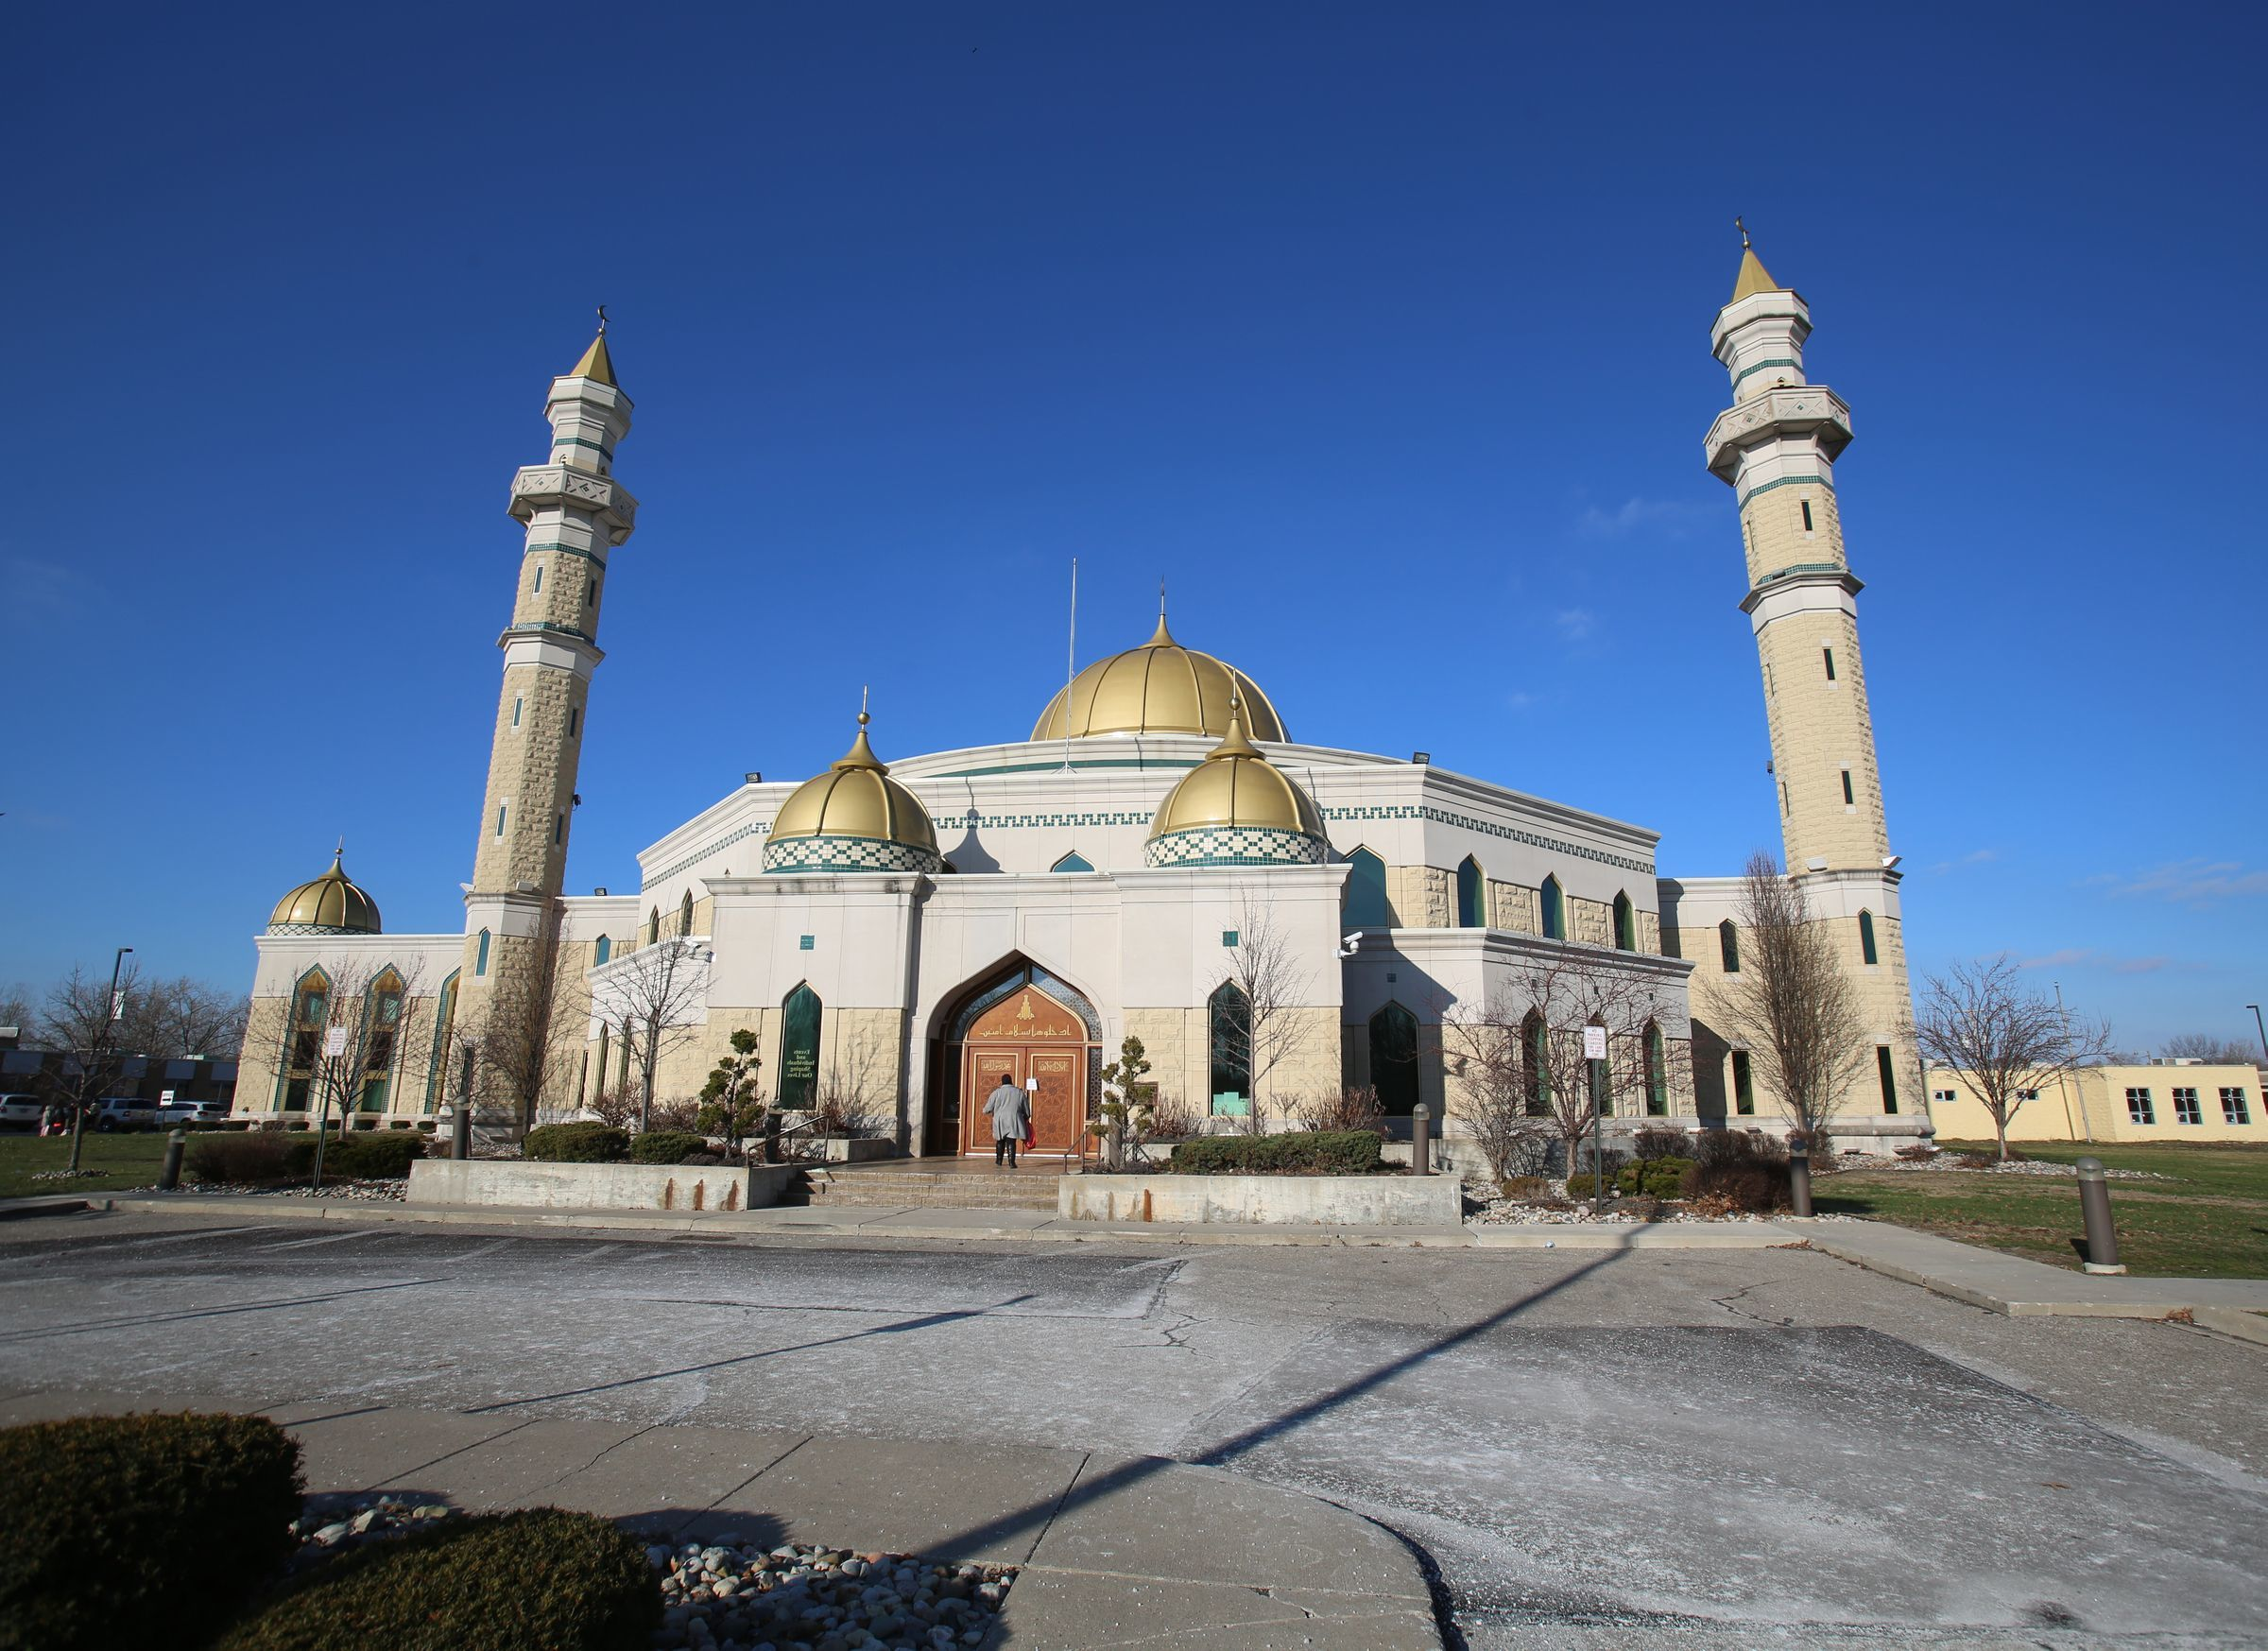 The Islamic Center of America in Dearborn has canceled Friday prayers amid concerns over coronavirus. Photo from Jan. 2, 2016.